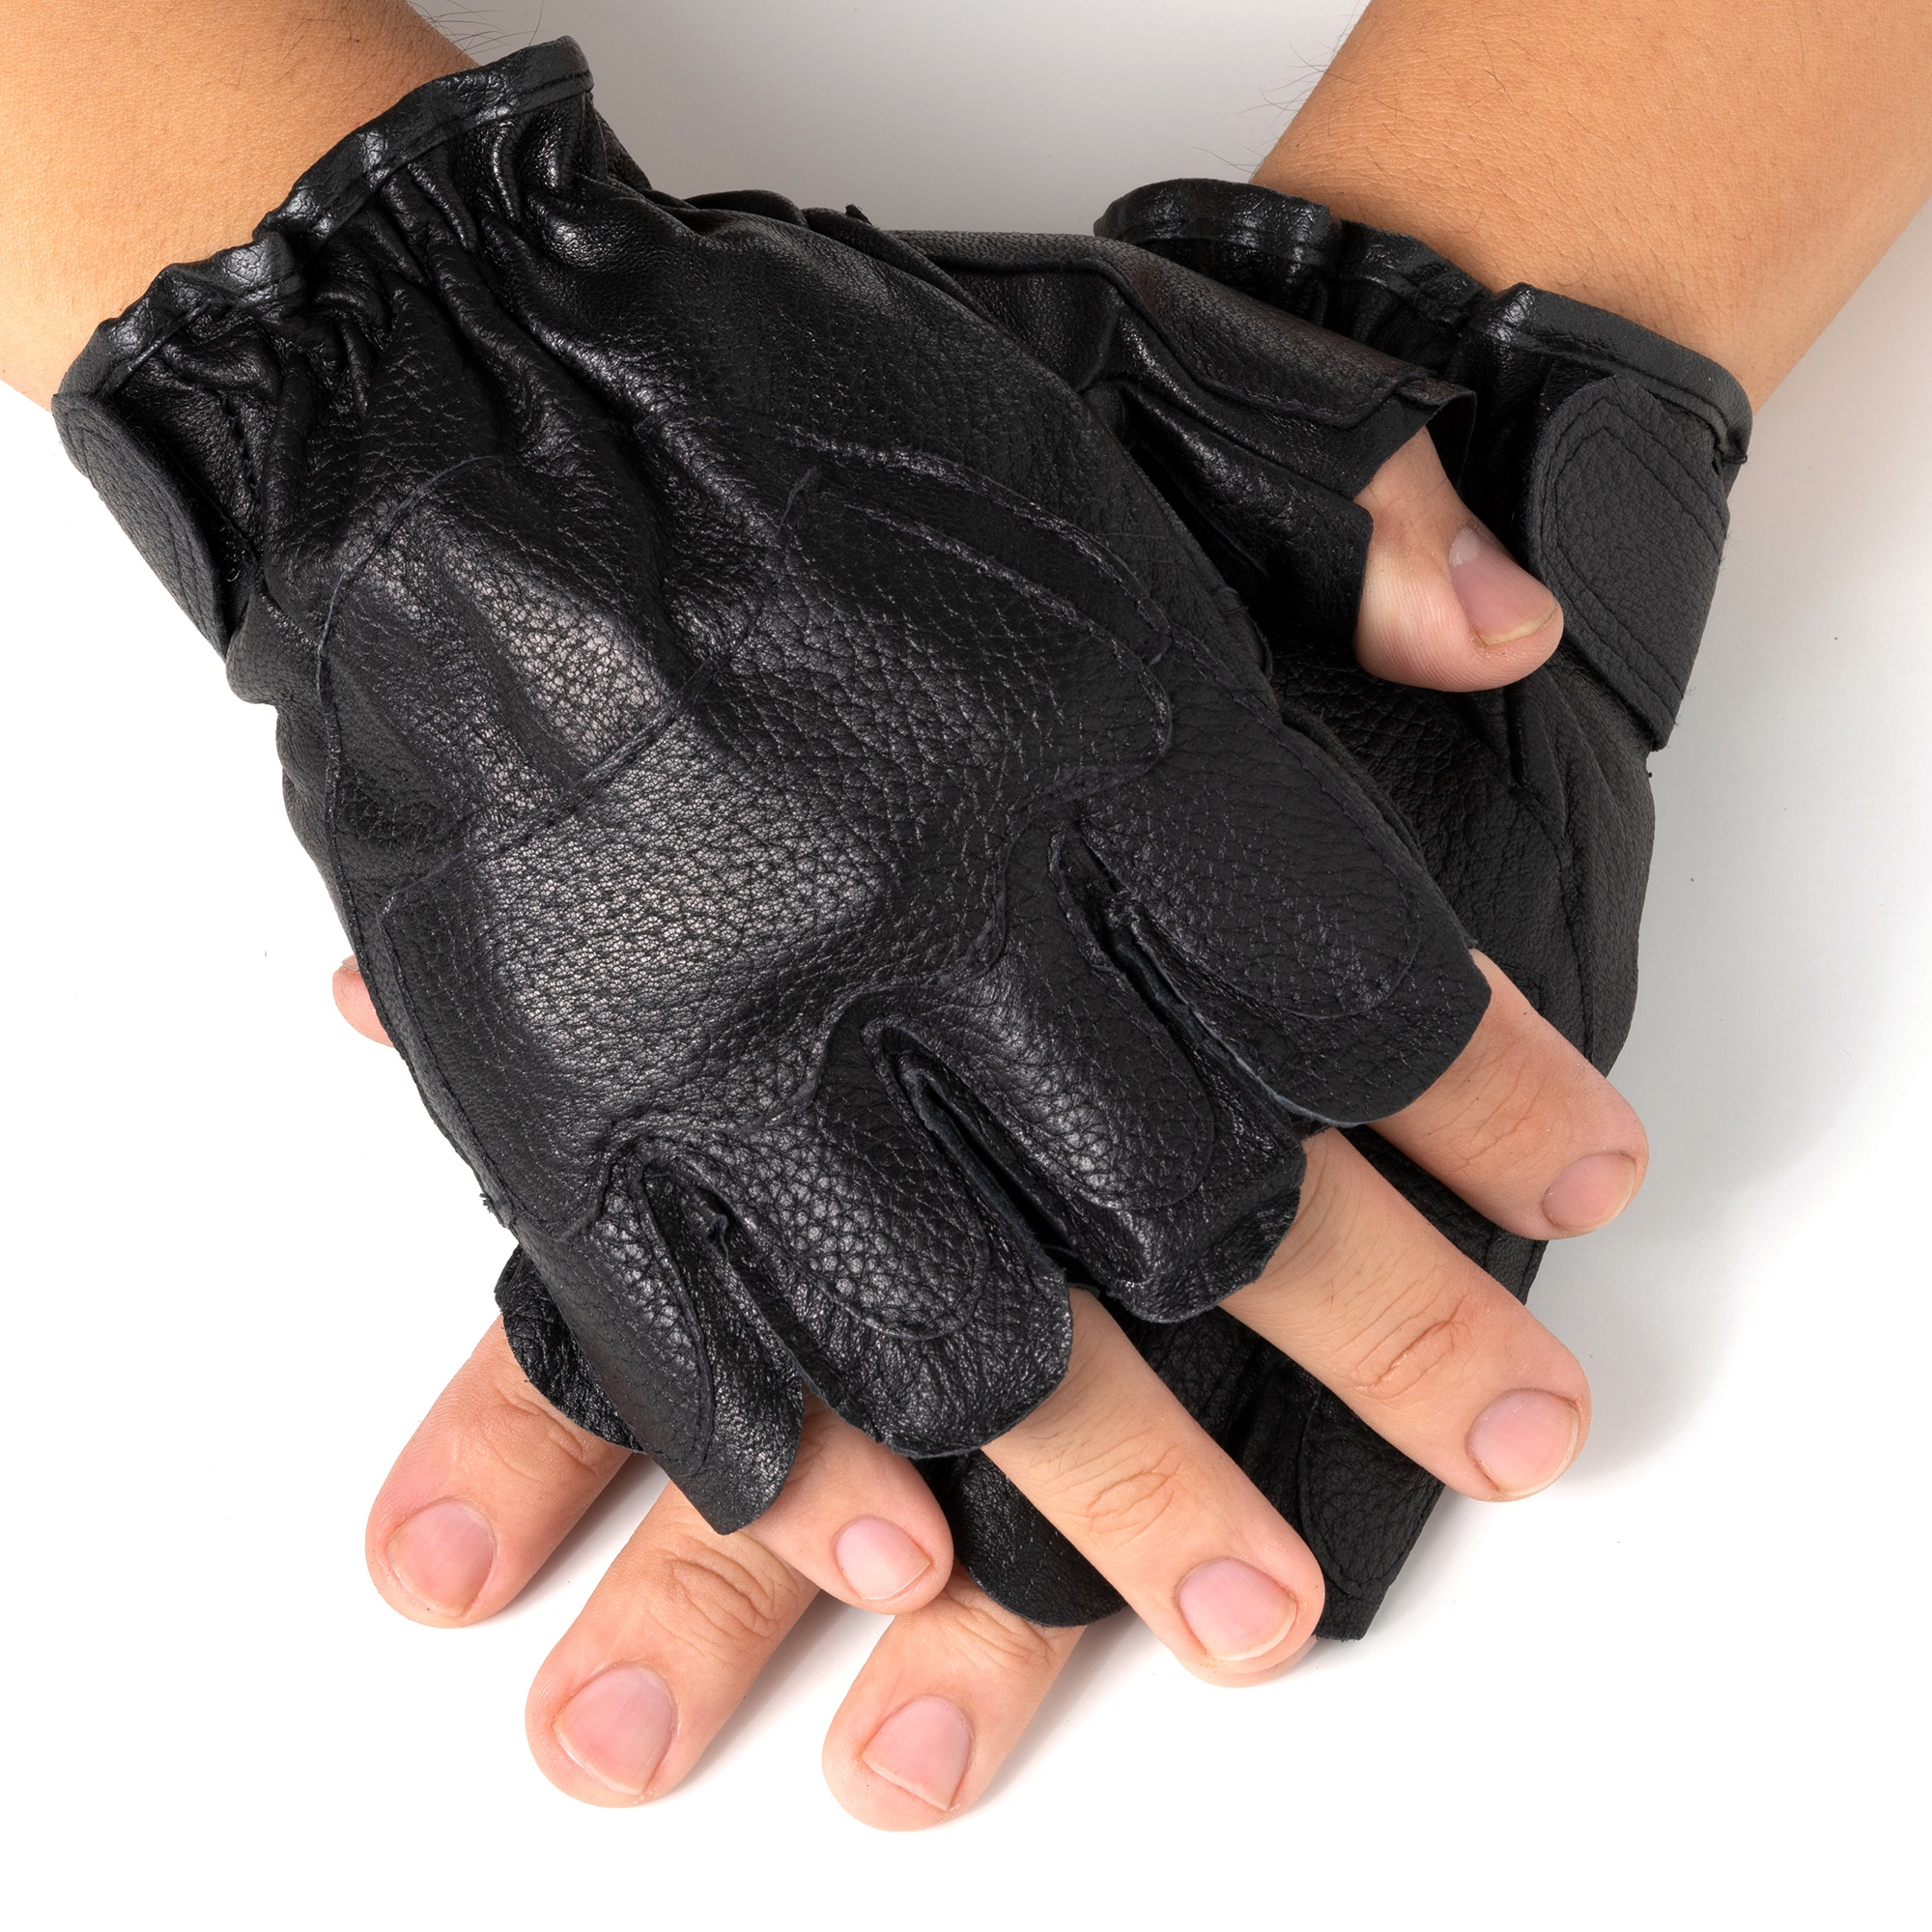 L Regular Milwaukee MENS MOTORCYCLE RIDING LEATHER FINGERLESS GLOVES BLACK FLAMES SOFT LEATHER